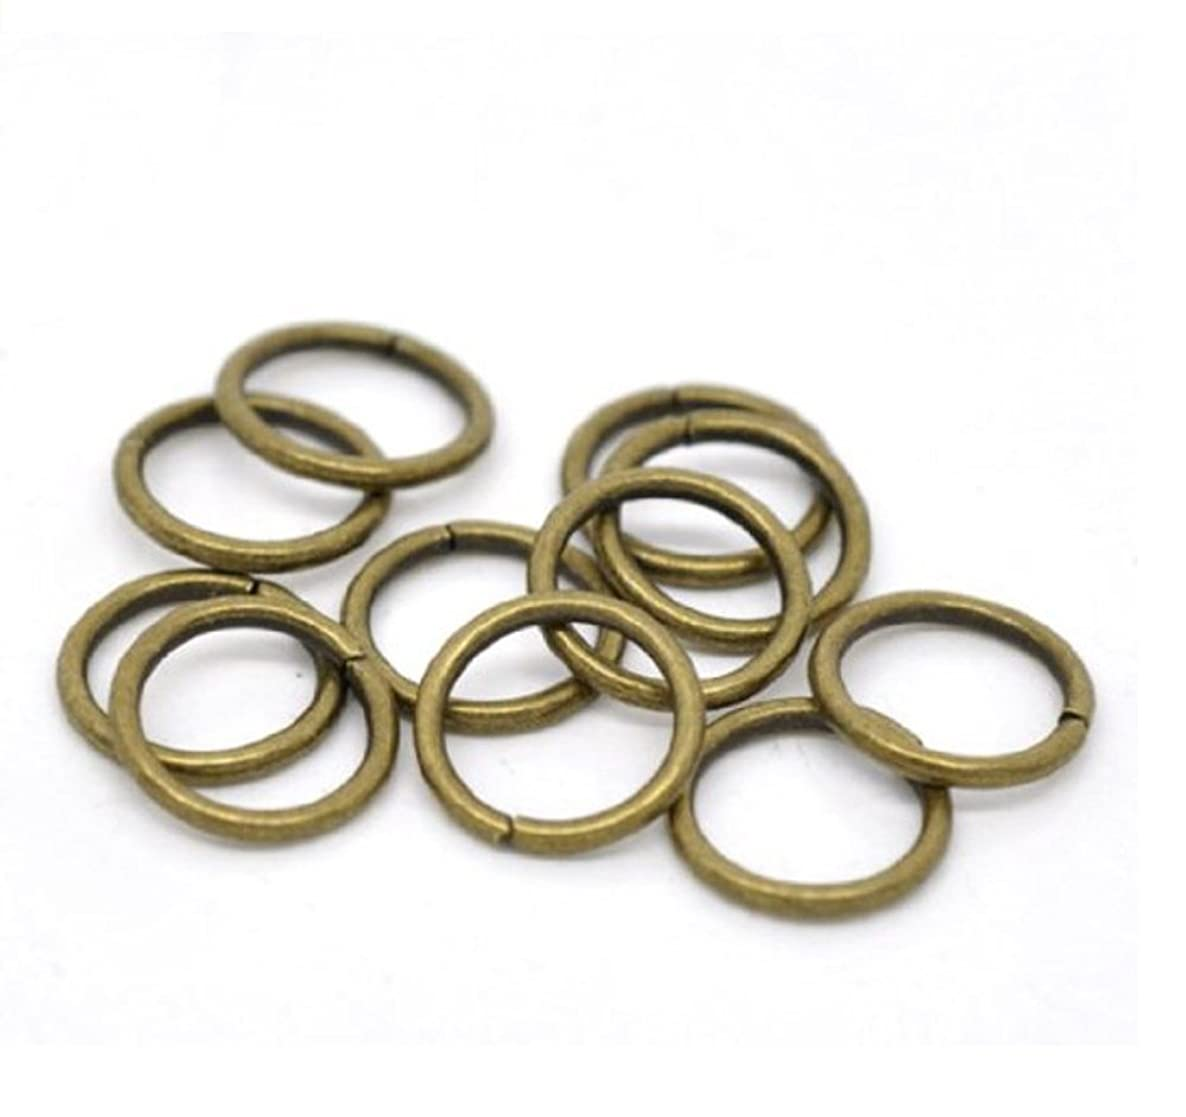 200pcs Top Quality 12mm Jump Ring (~21GA or 0.7mm Wire) Antique Bronze Plated for Jewelry Craft Making CF167-12